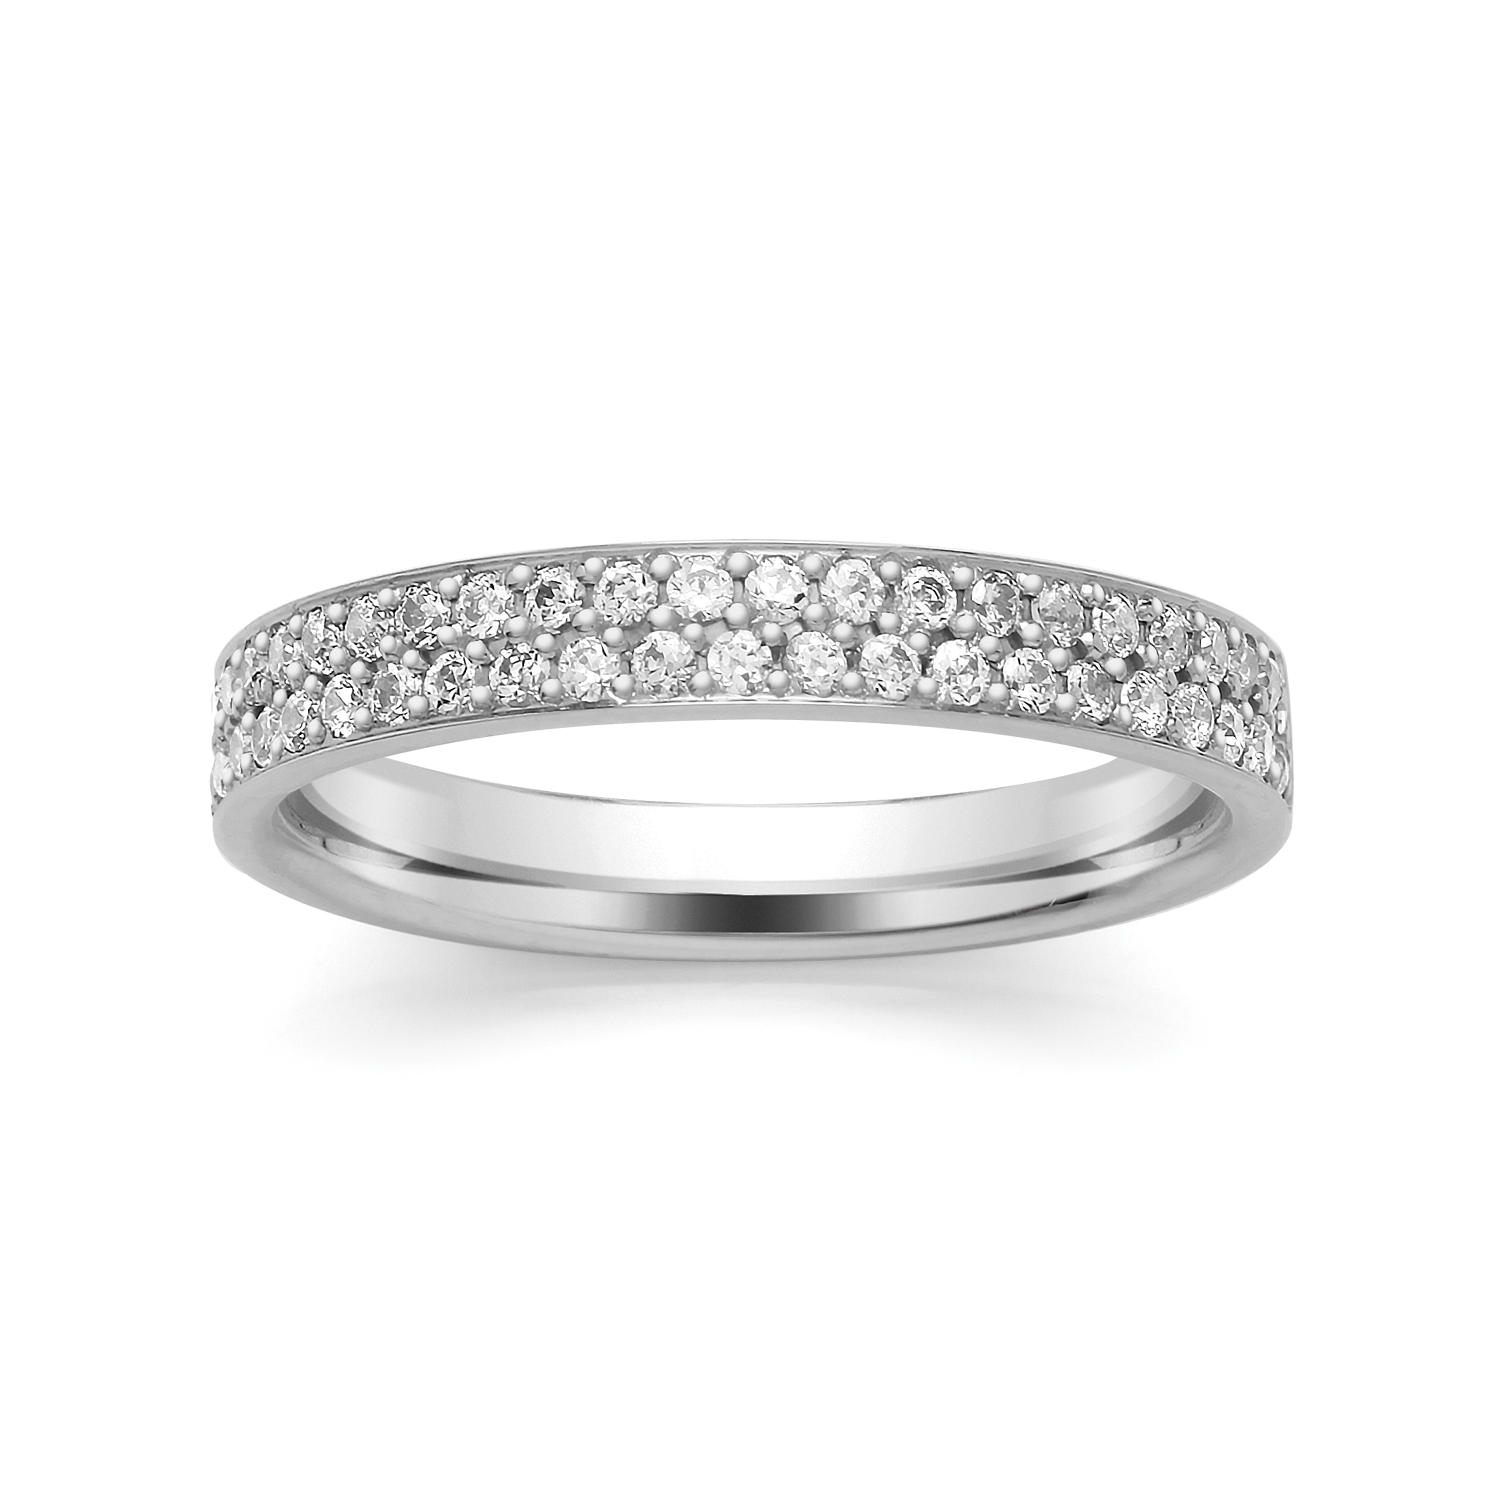 3.2mm Double Row Diamond Ring, Grain Set Ring